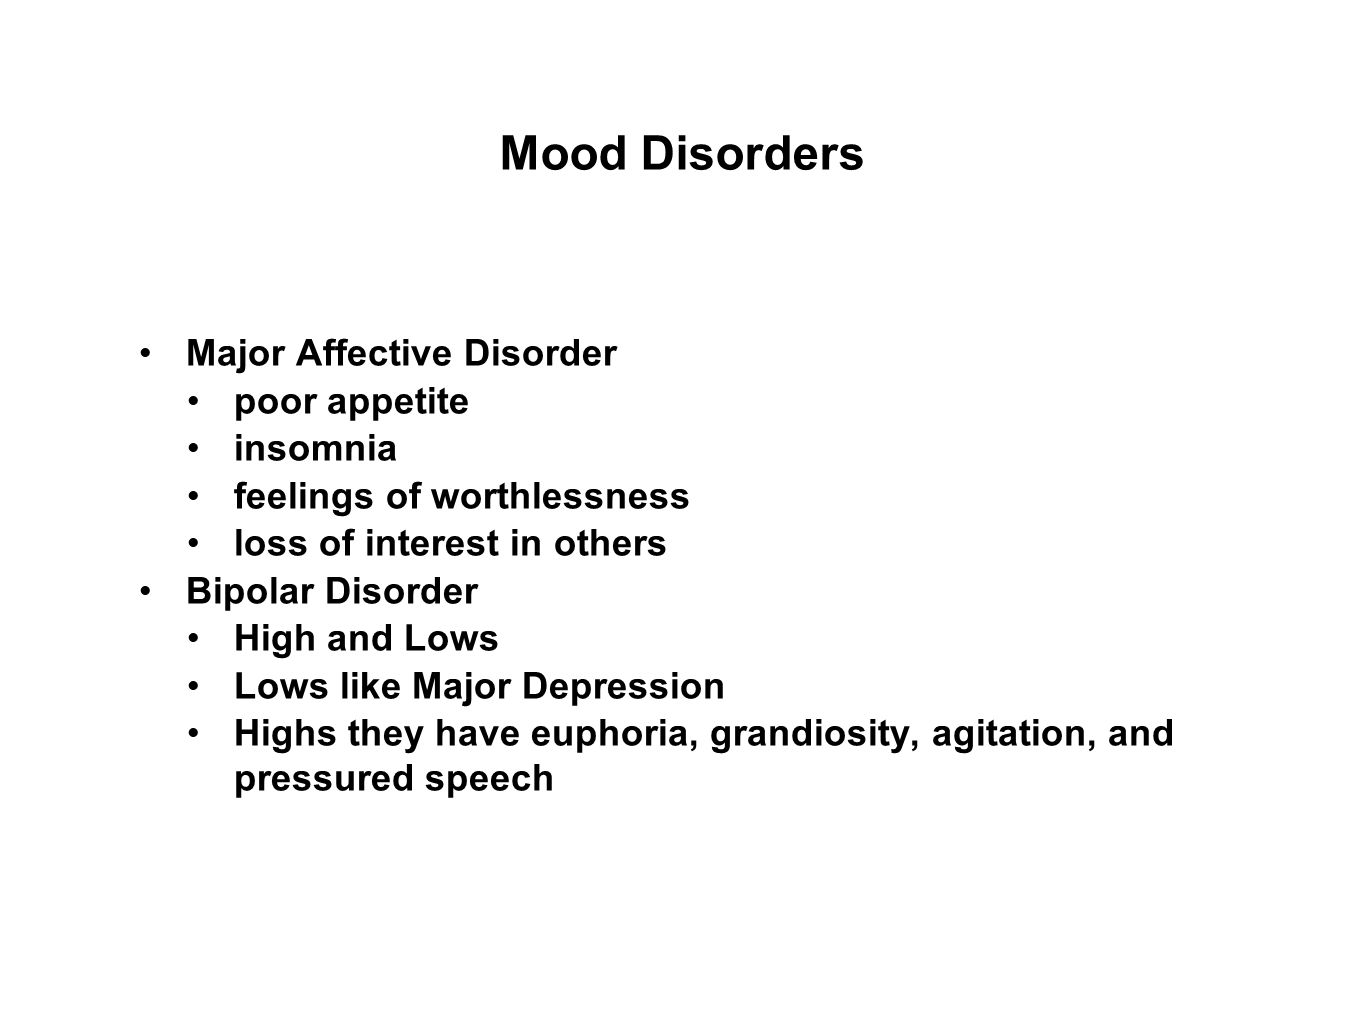 Mood Disorders Major Affective Disorder poor appetite insomnia feelings of worthlessness loss of interest in others Bipolar Disorder High and Lows Lows like Major Depression Highs they have euphoria, grandiosity, agitation, and pressured speech